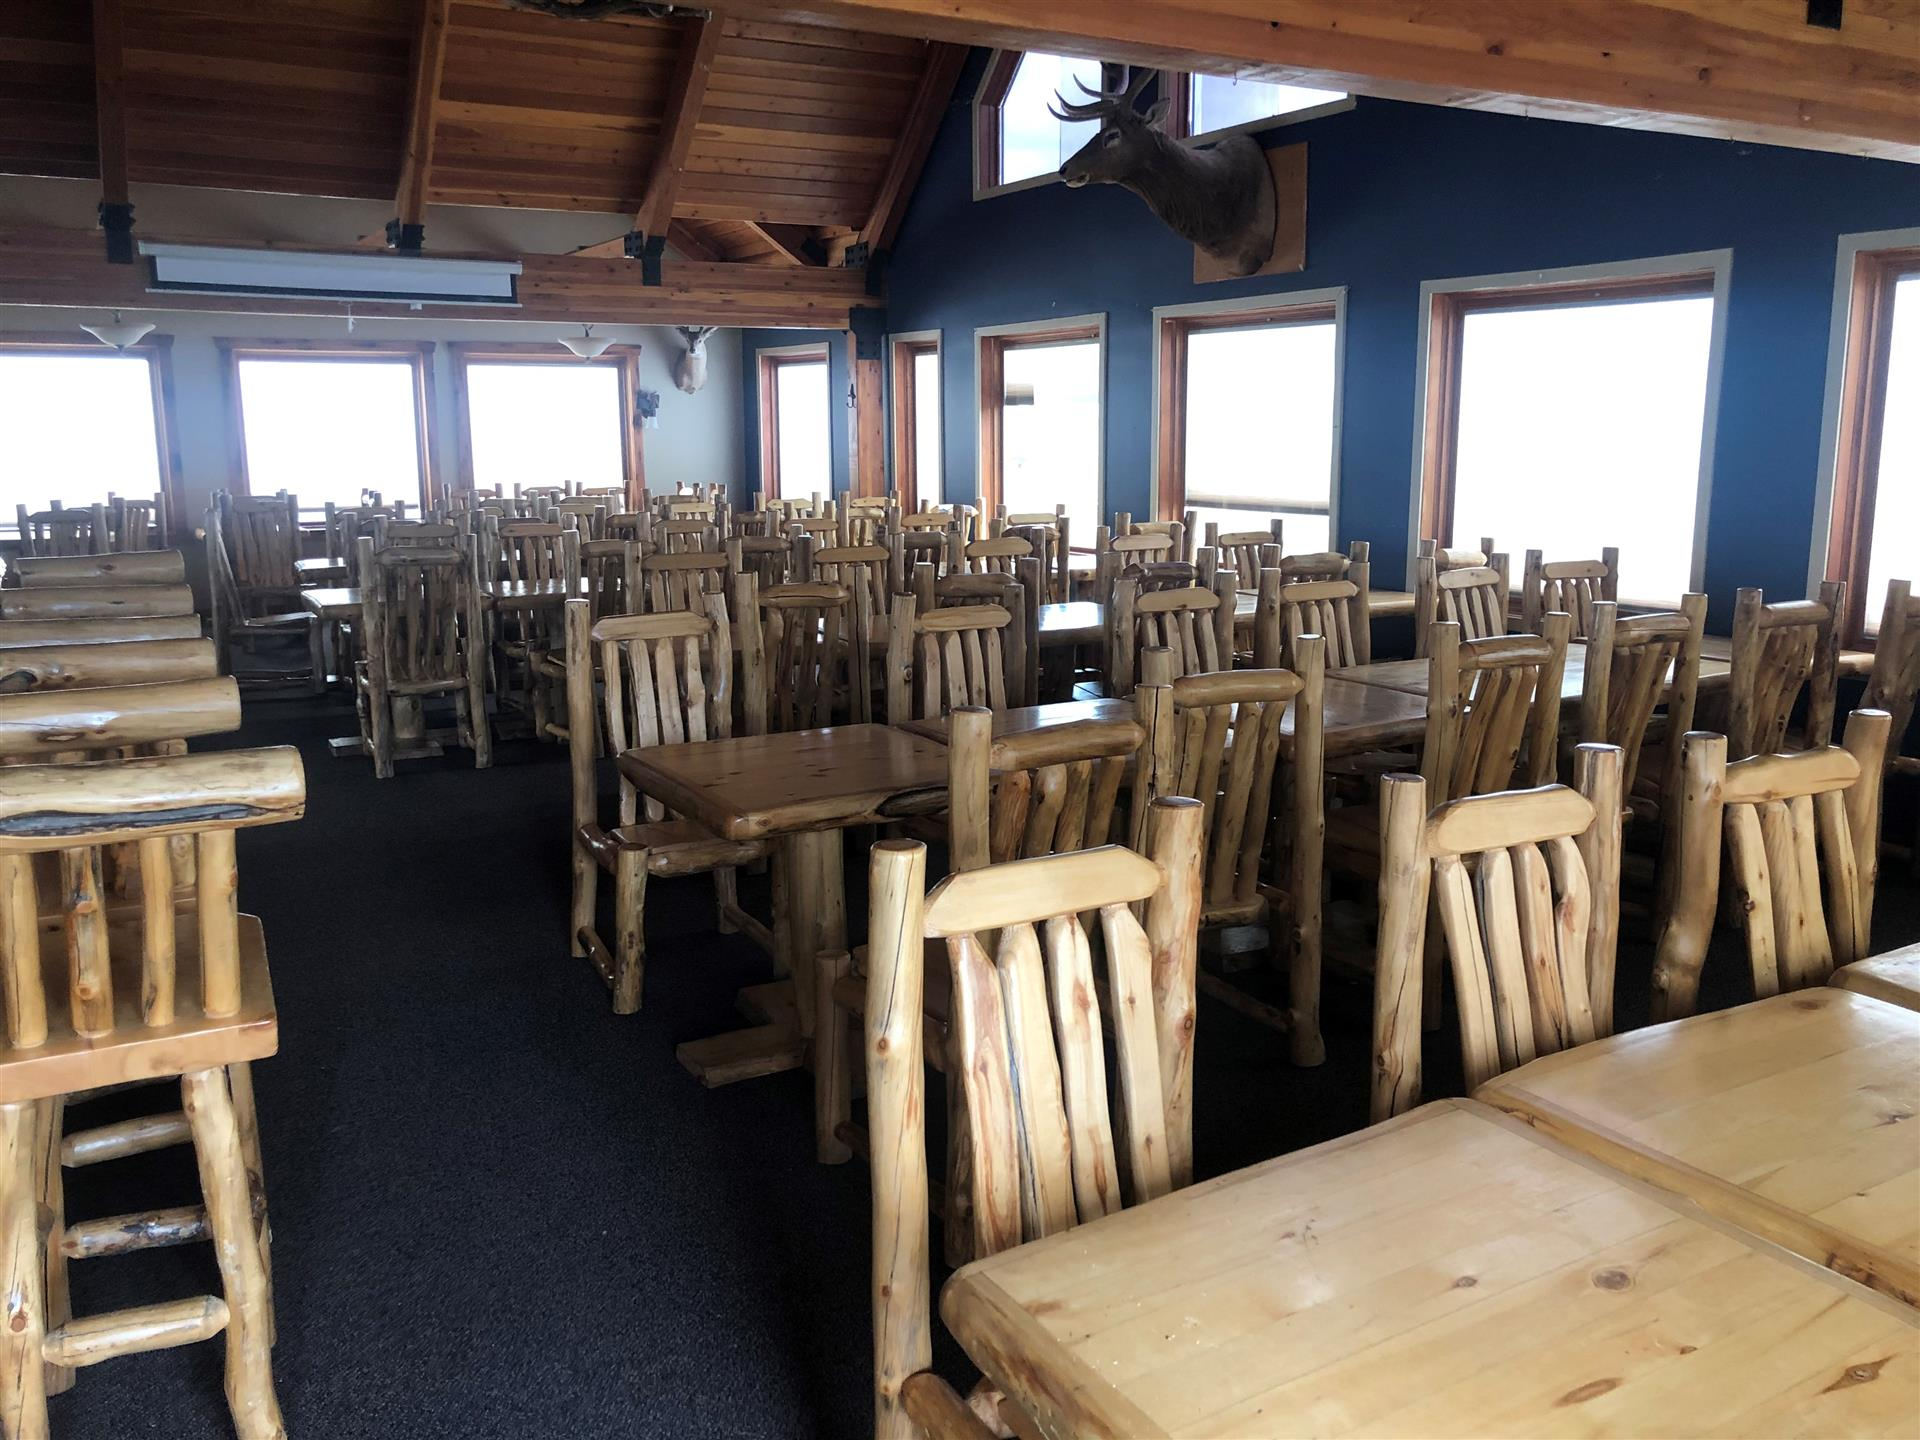 a room with wooden tables and wooden chairs